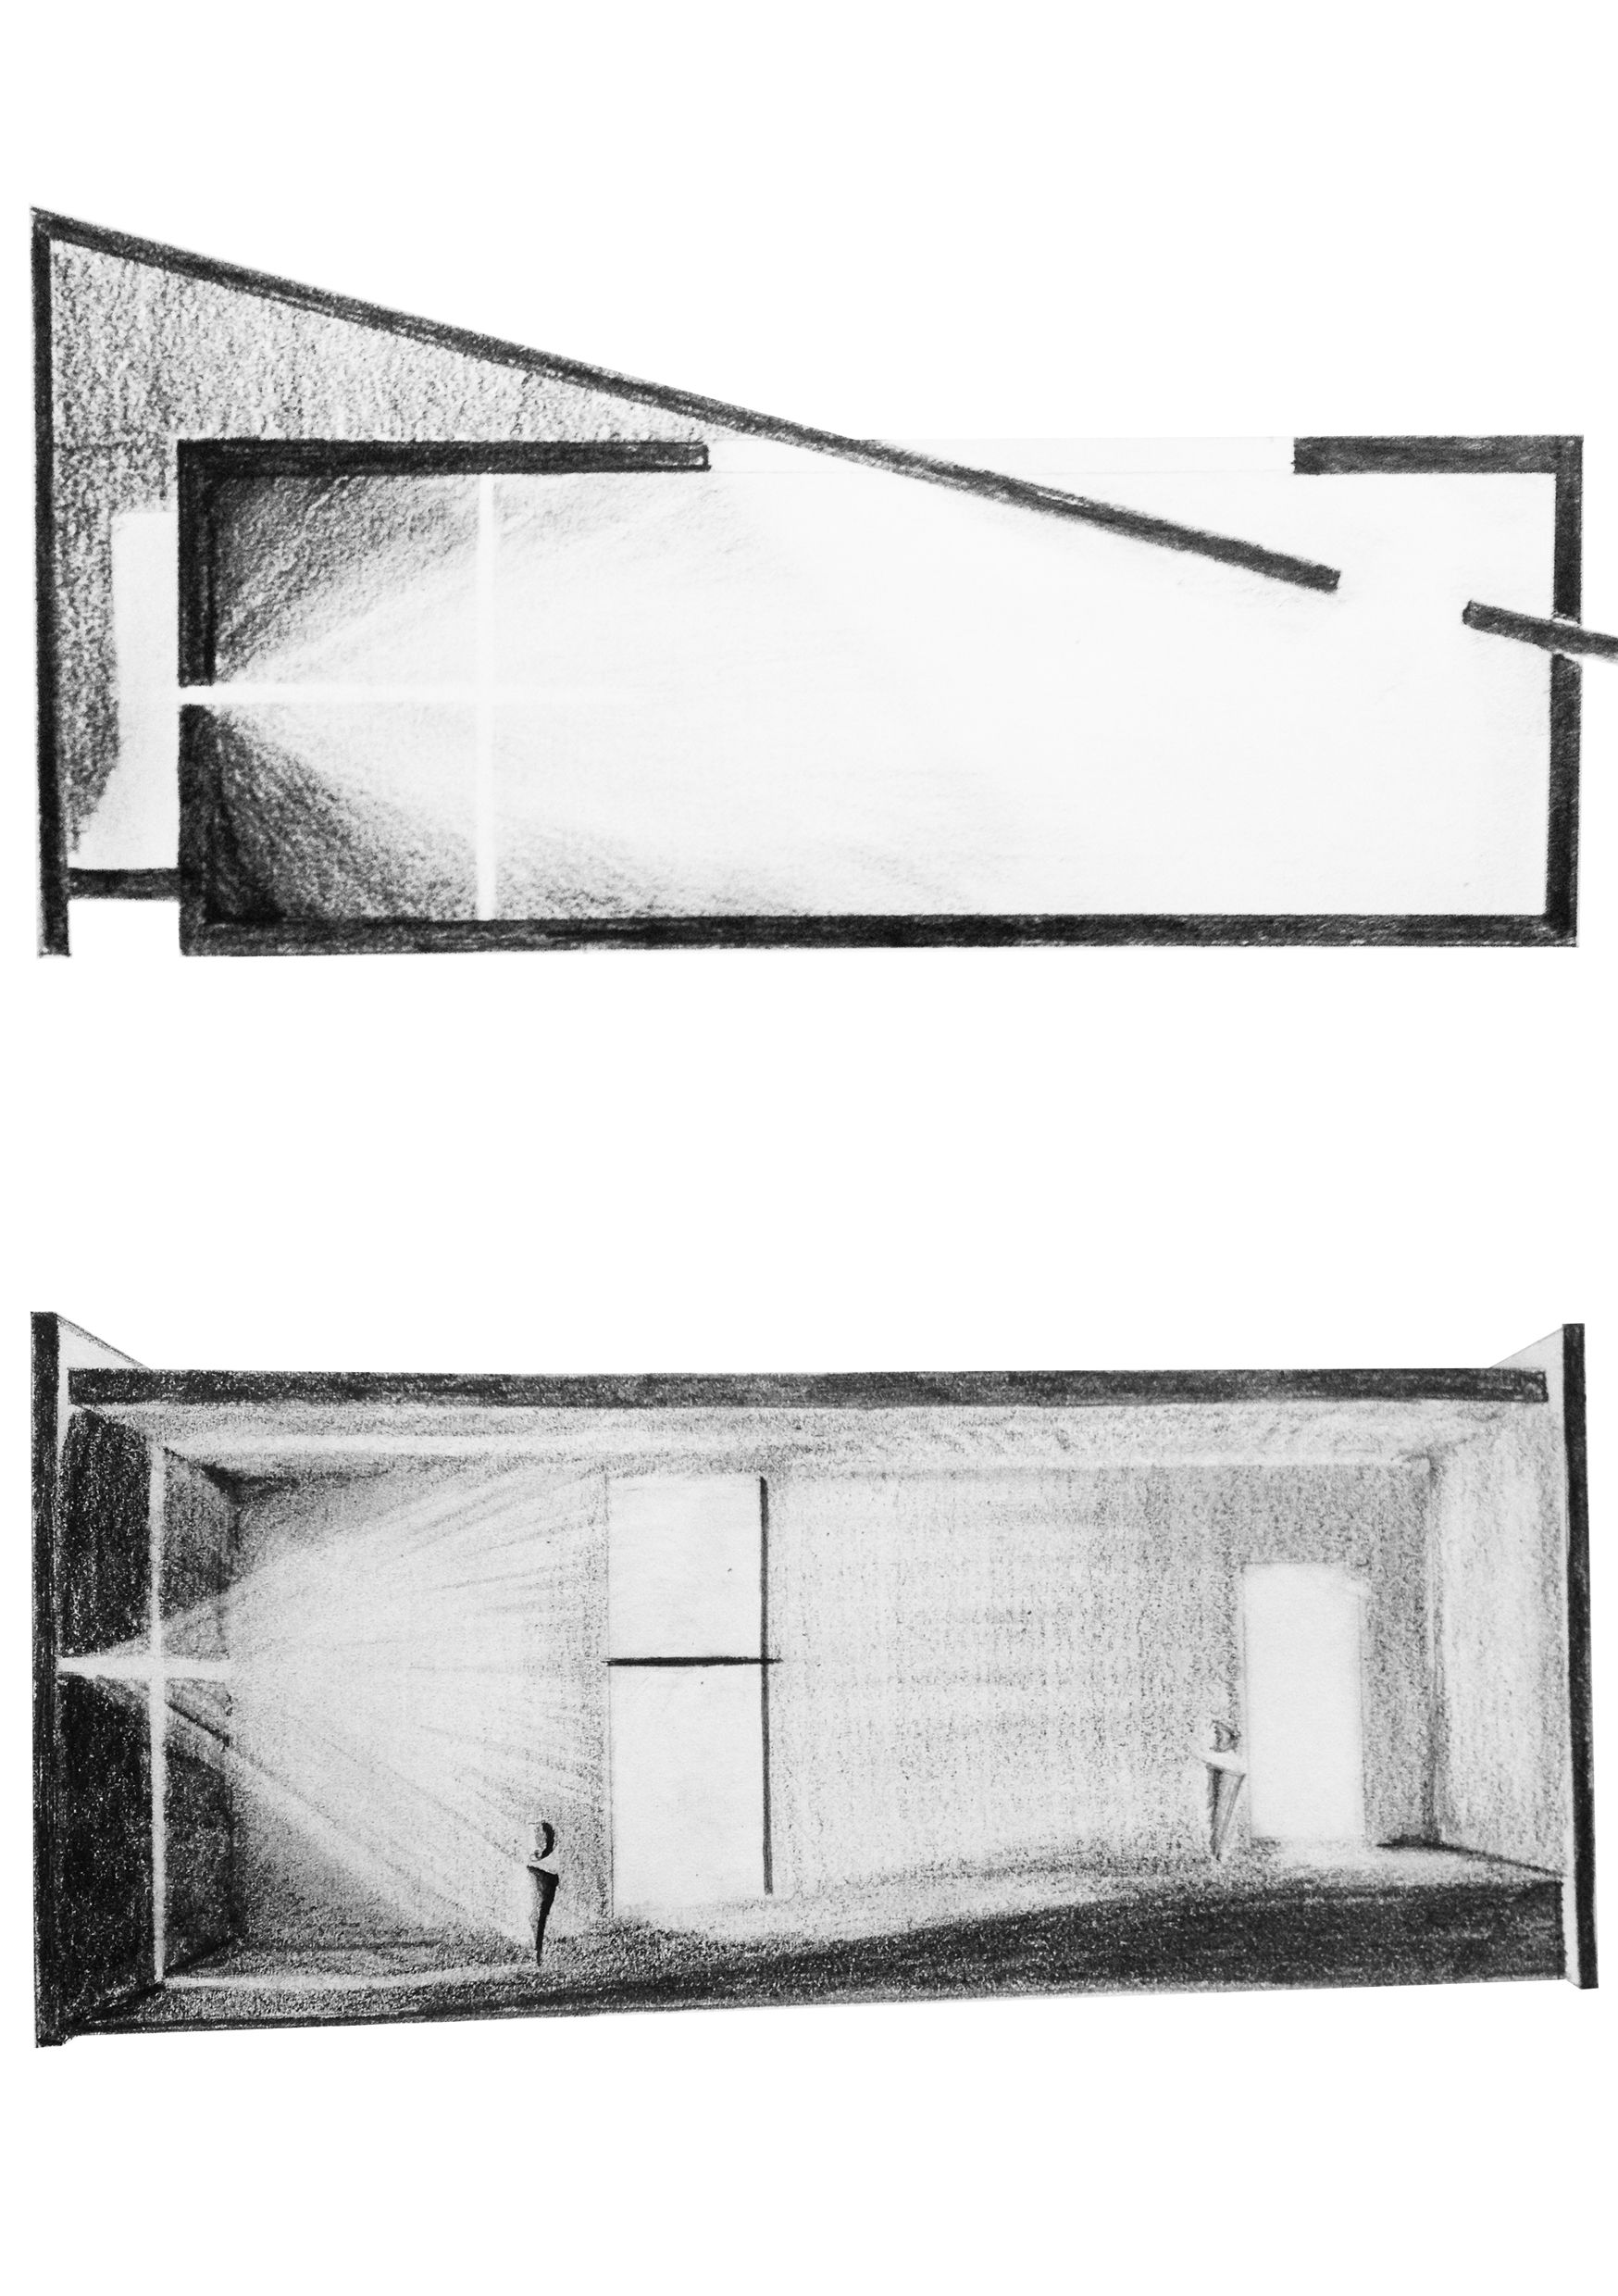 Sketches representing the intensity and composition of for Architecture vernaculaire definition